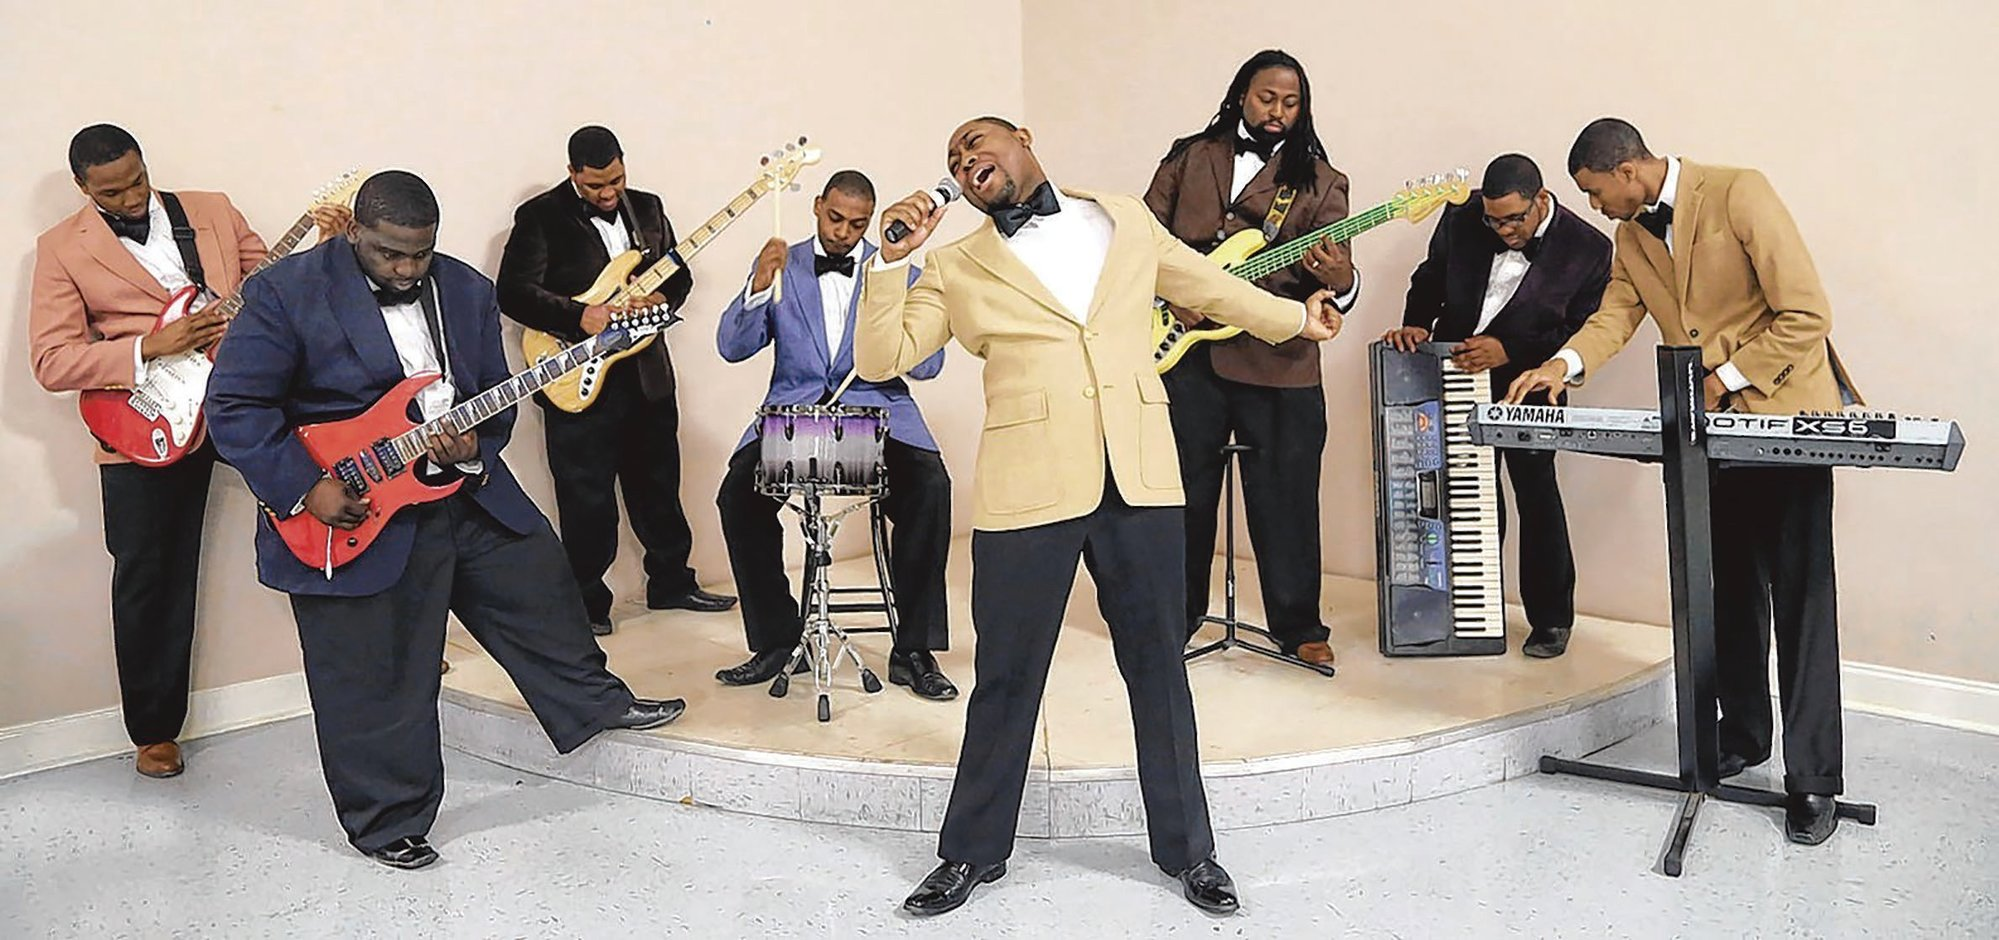 PHOTO PROVIDED  Elijah Bradford and the Valentinos seek fans' votes to become the opening act for gospel singer JJ Hairston at the S.C. State Fair.